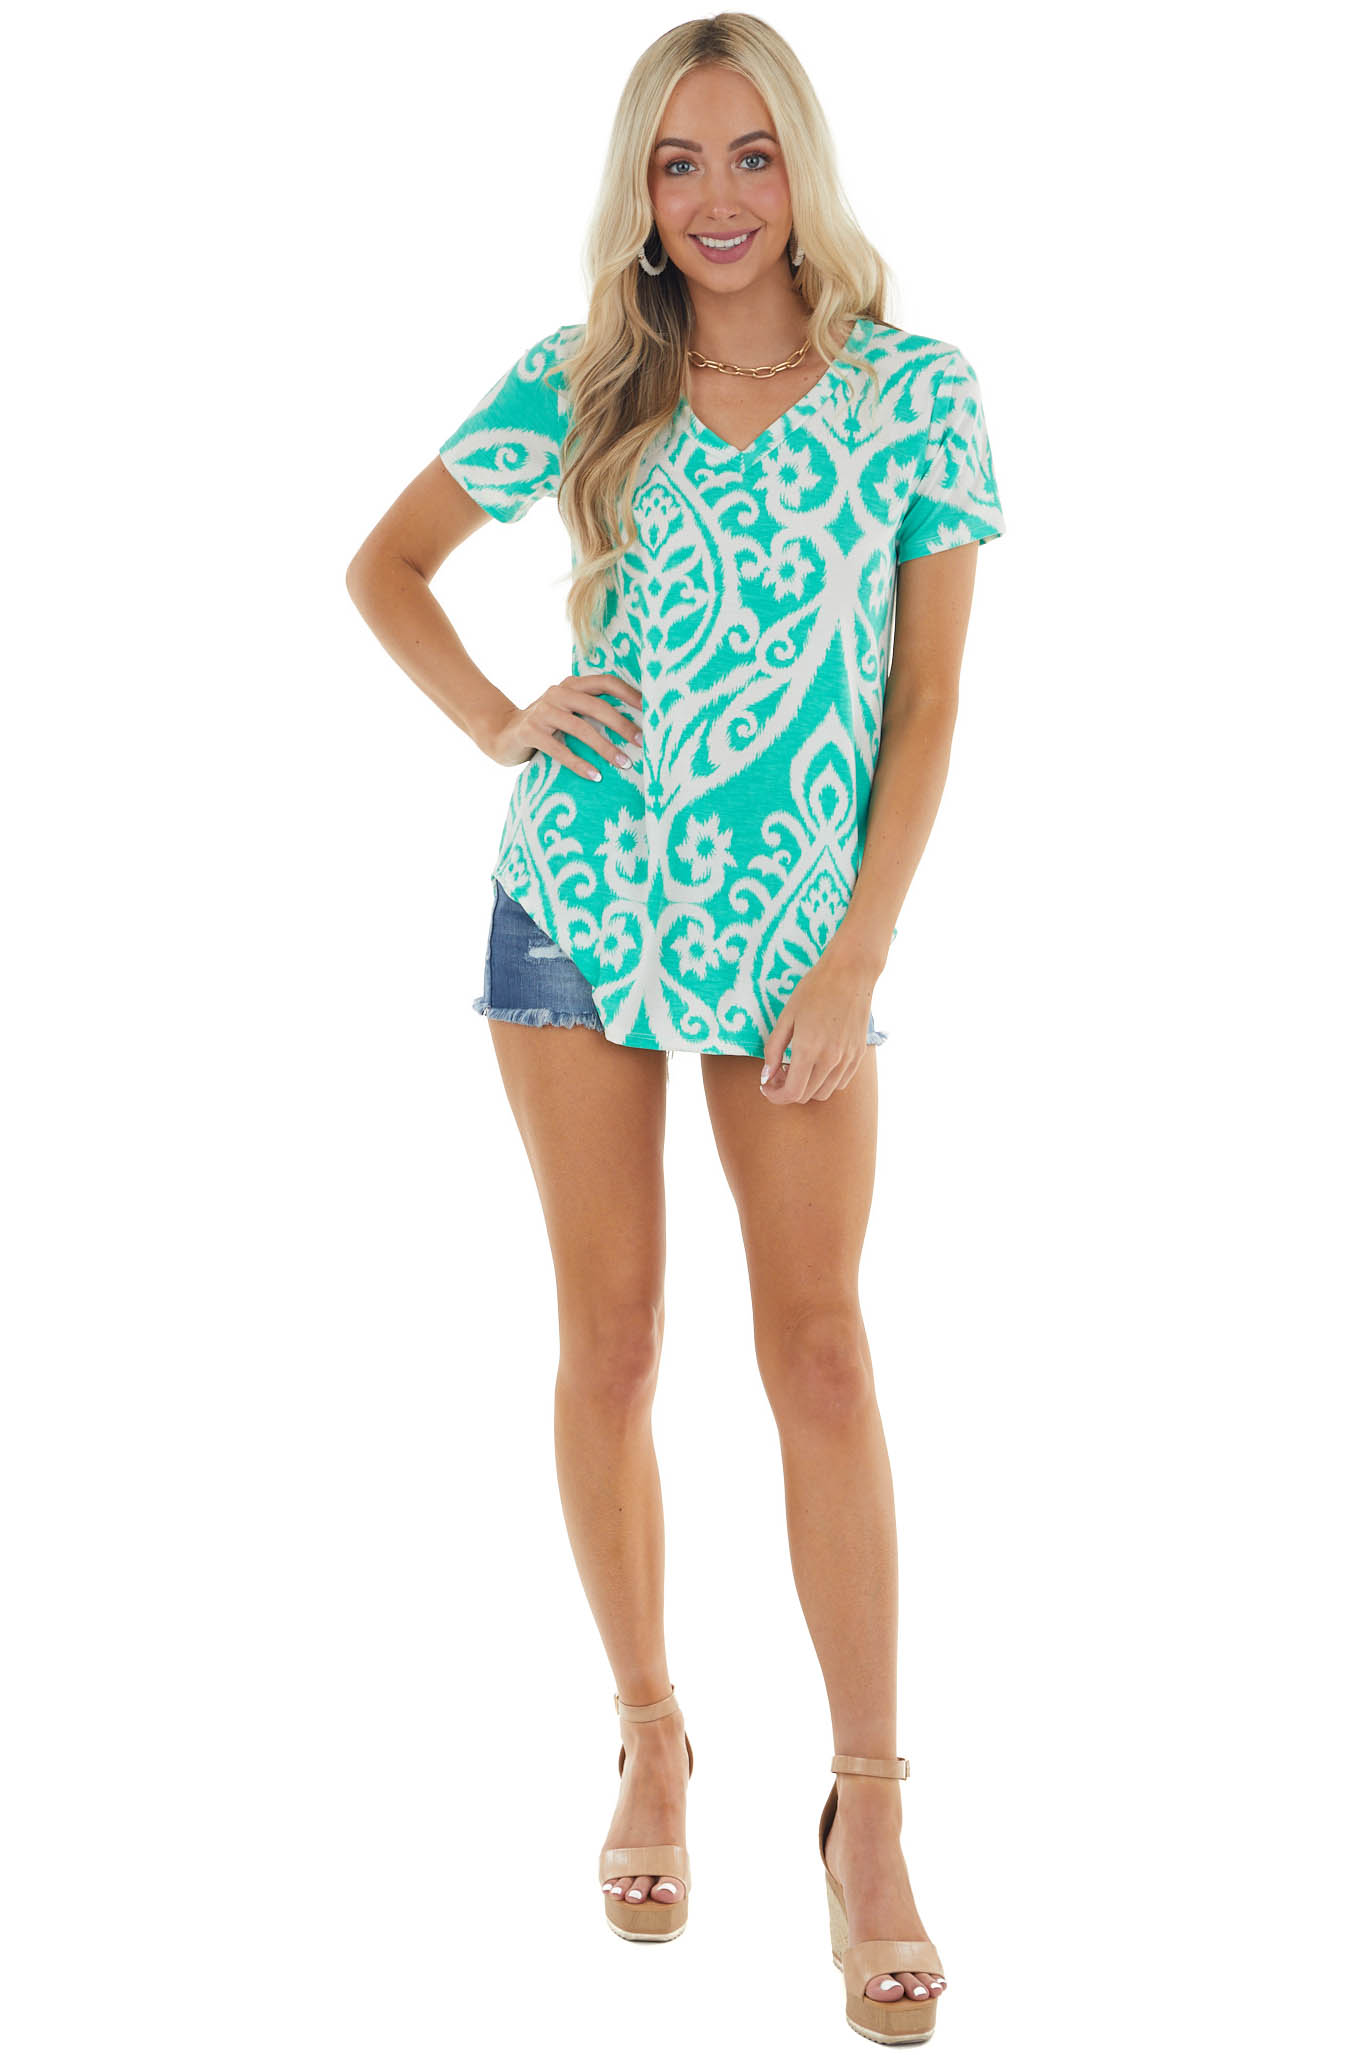 Turquoise Printed Stretchy Knit Top with Rounded Hemline